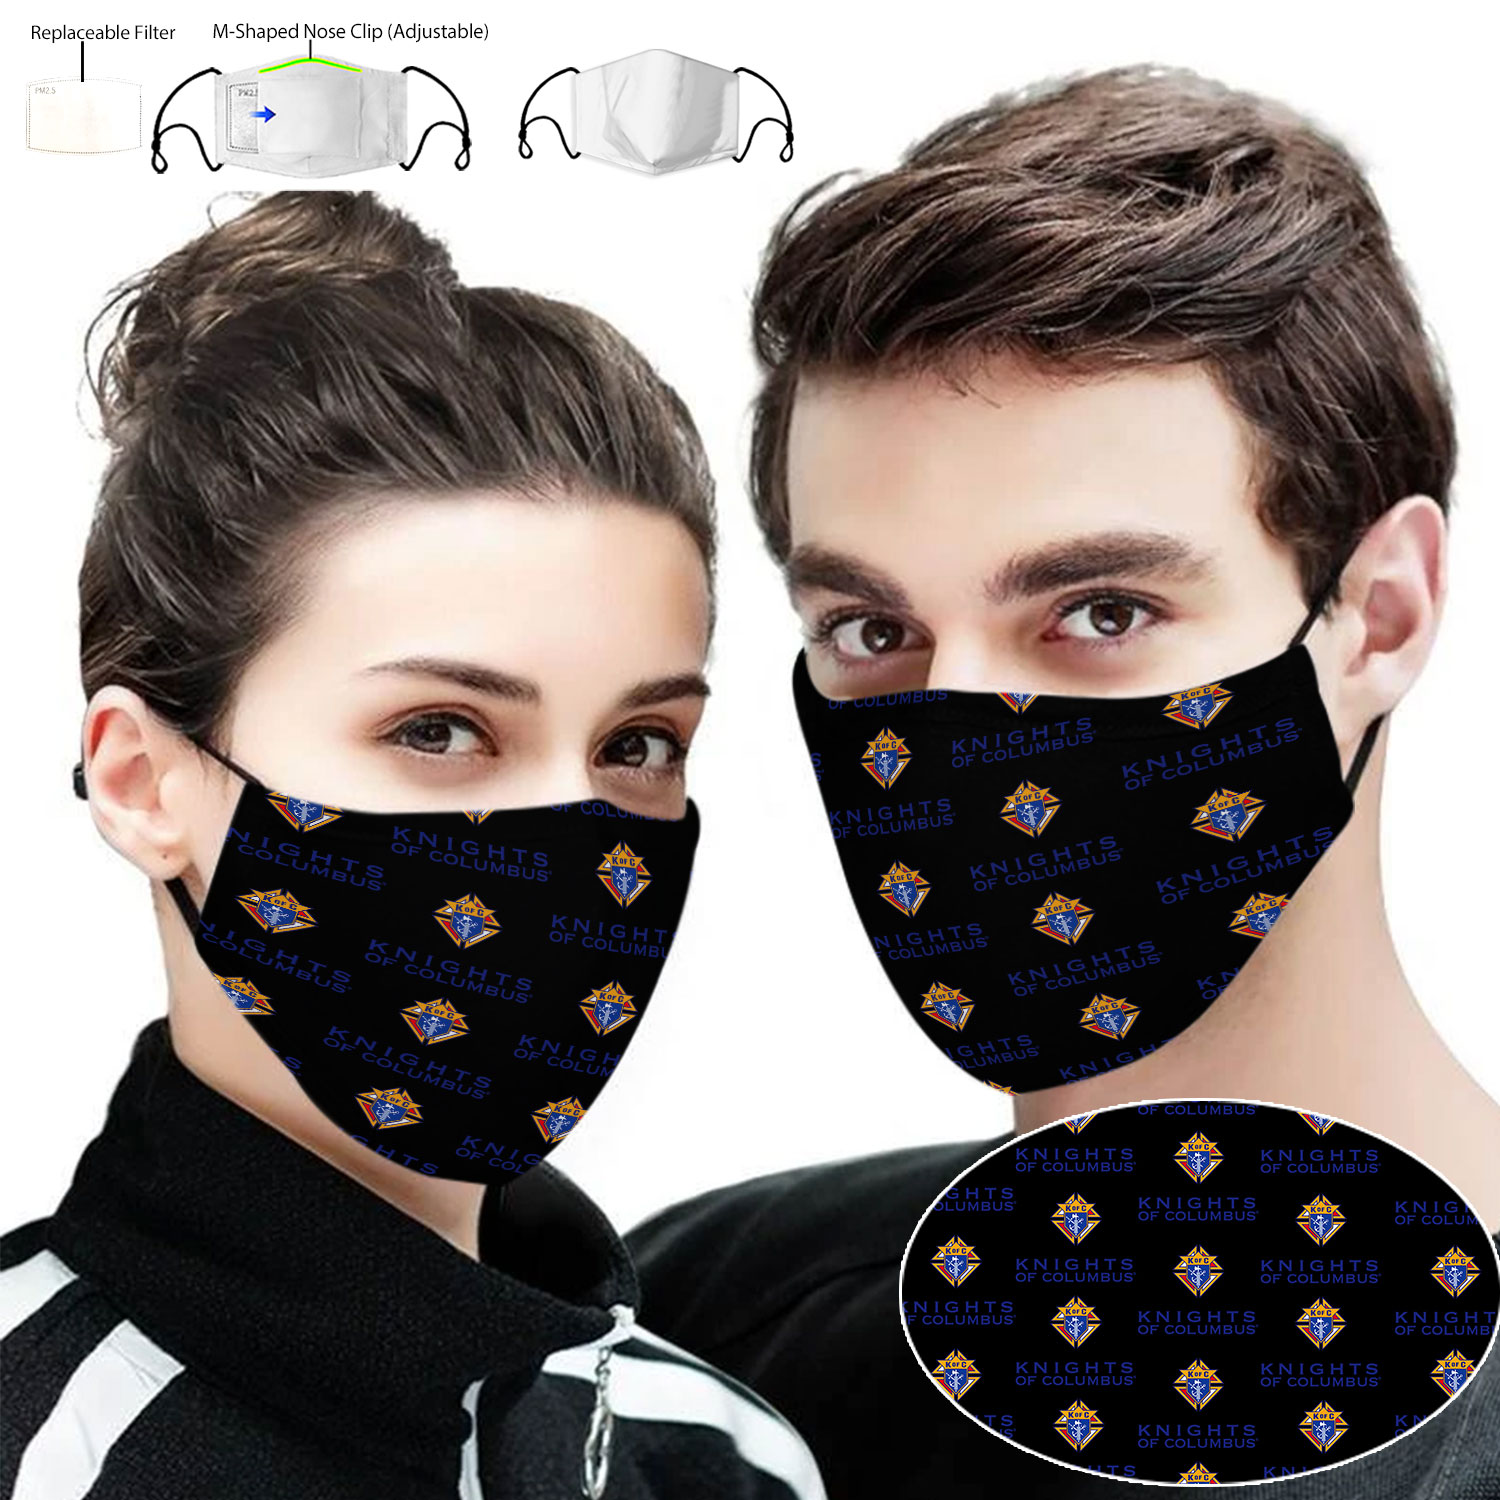 Knights of columbus full printing face mask 1